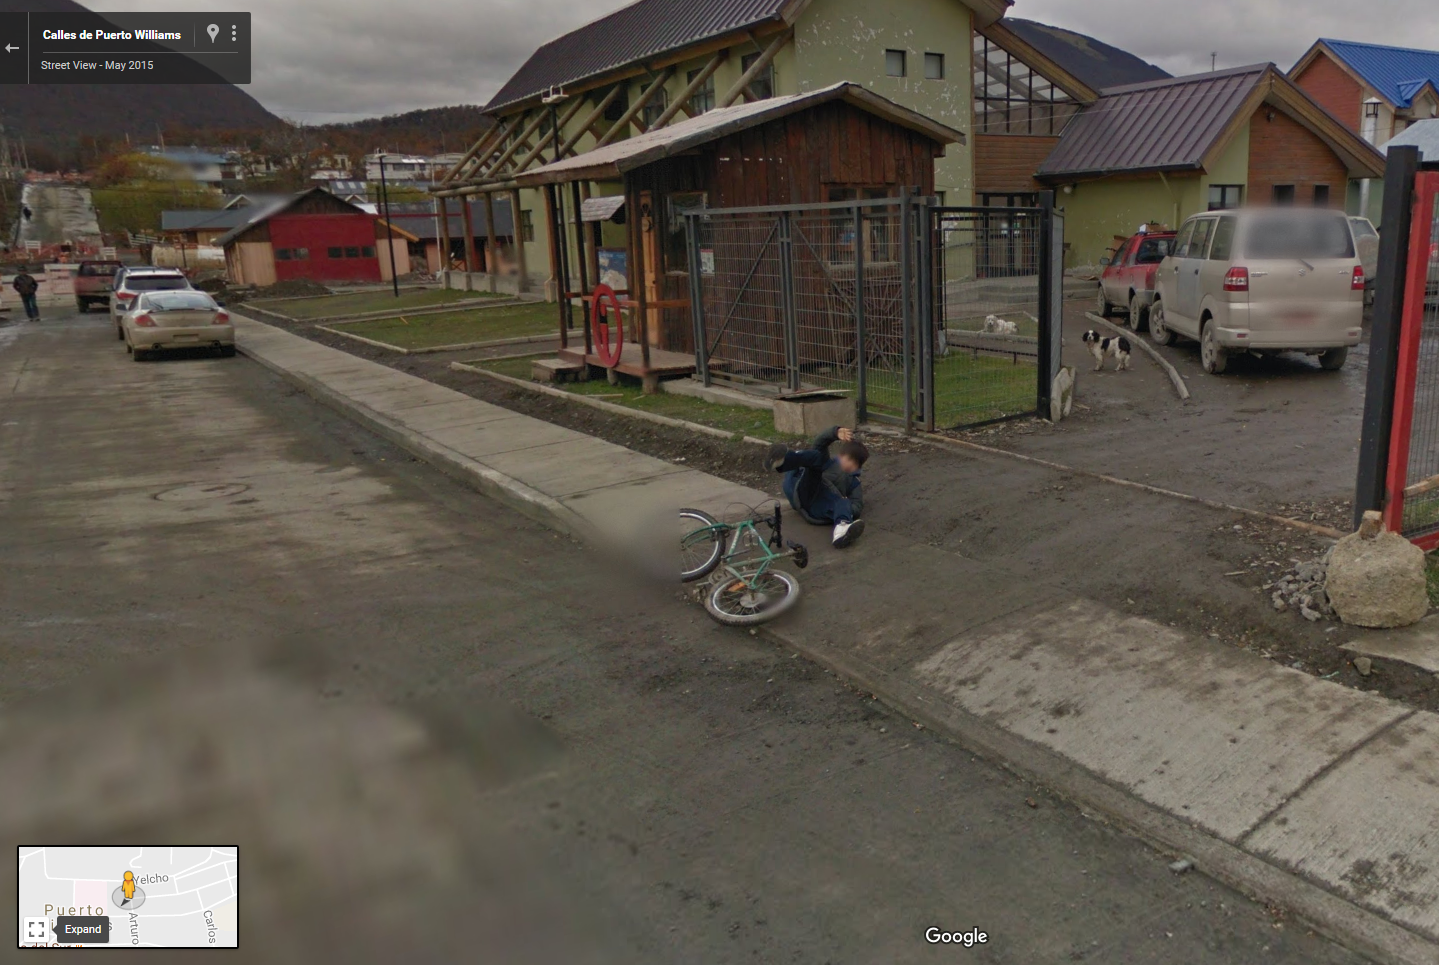 google street view chile captures a bike fail google. Black Bedroom Furniture Sets. Home Design Ideas